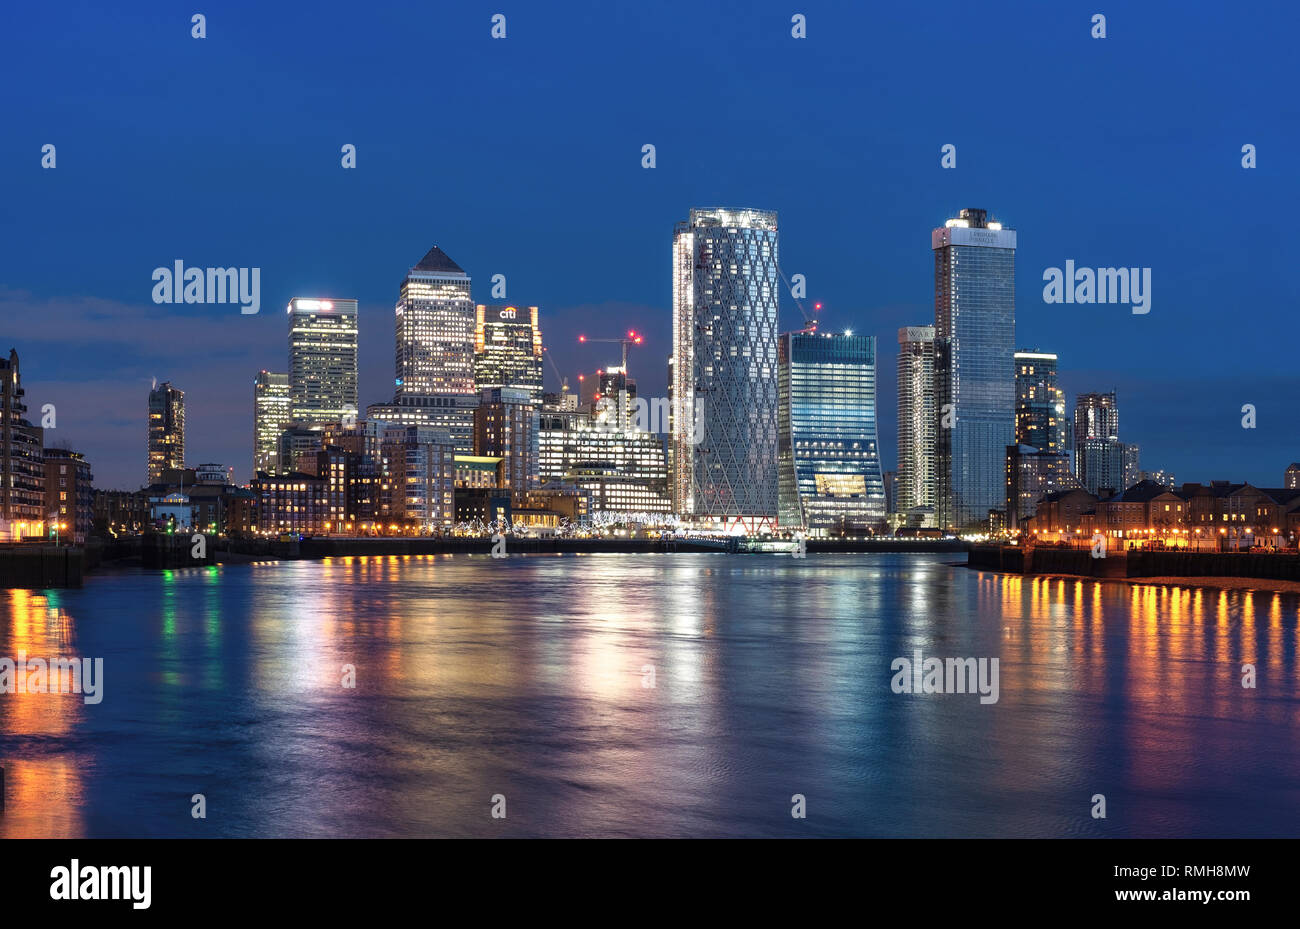 Canary Wharf, London, Relecting in the River Thames at Dusk - Stock Image